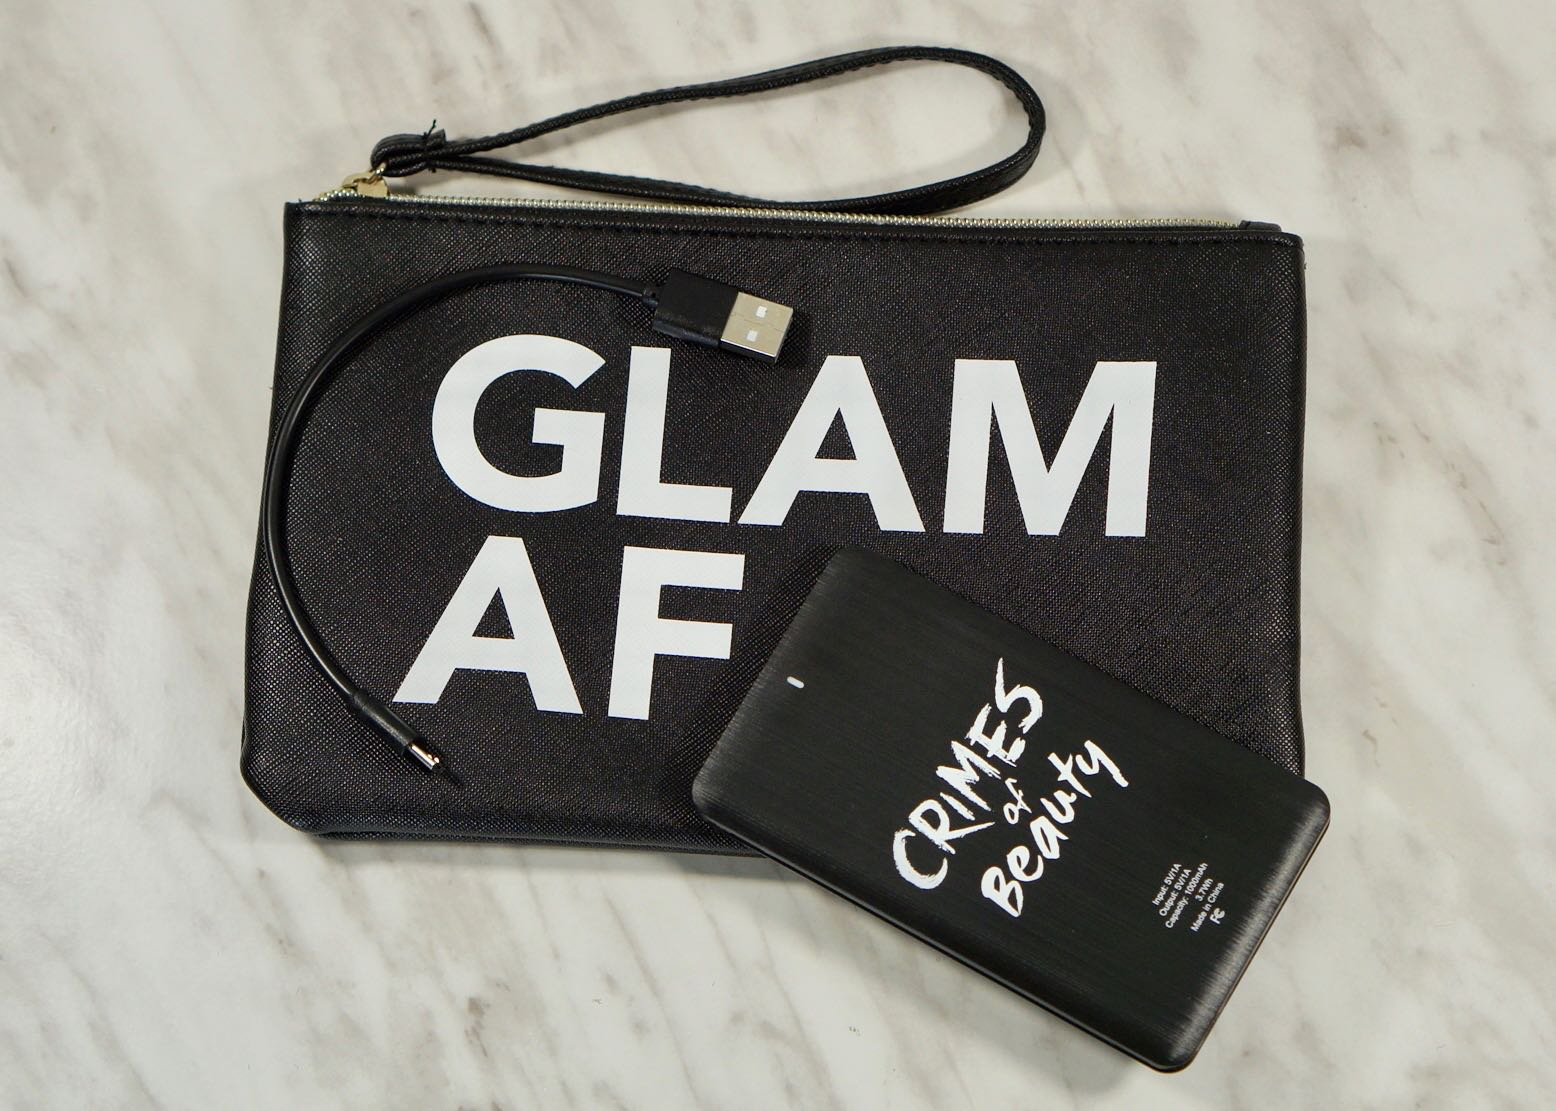 Boxy Charm-Luxe-December 2018-Crimes Of Beauty-Wristlet + Portable ChargerBoxy Charm-Luxe-December 2018DSC09837.jpg